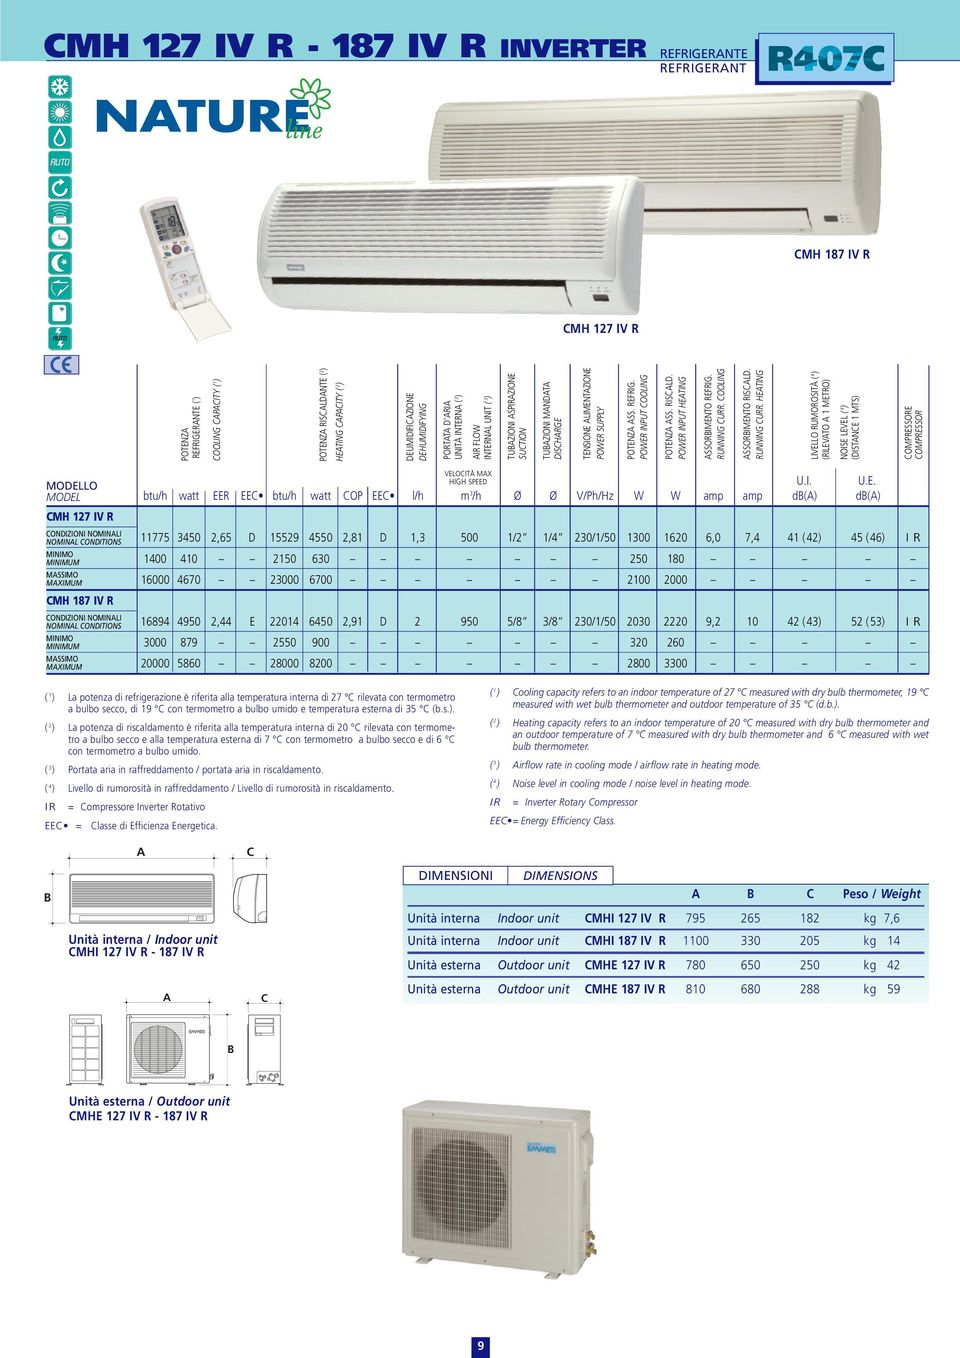 POWER INPUT HETING SSORIMENTO REFRIG. RUNNING URR.